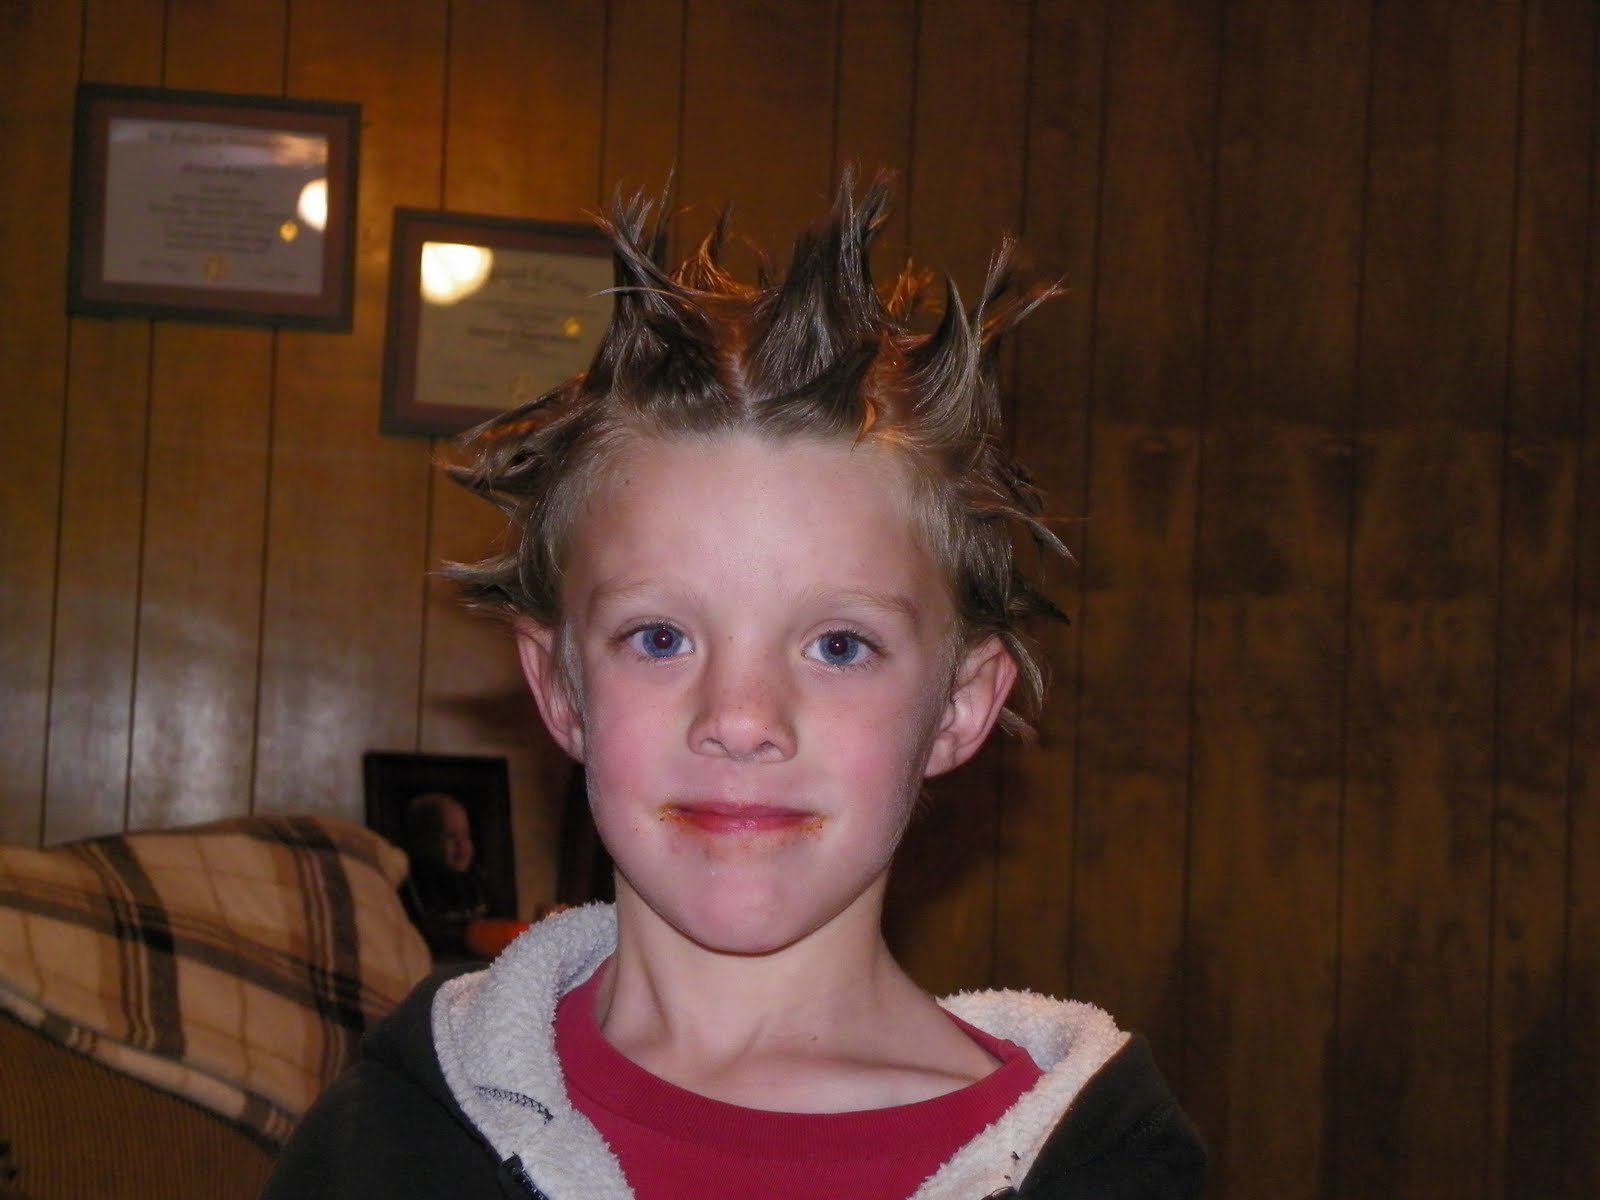 New Haircut Games For Boys Ideas With Pictures